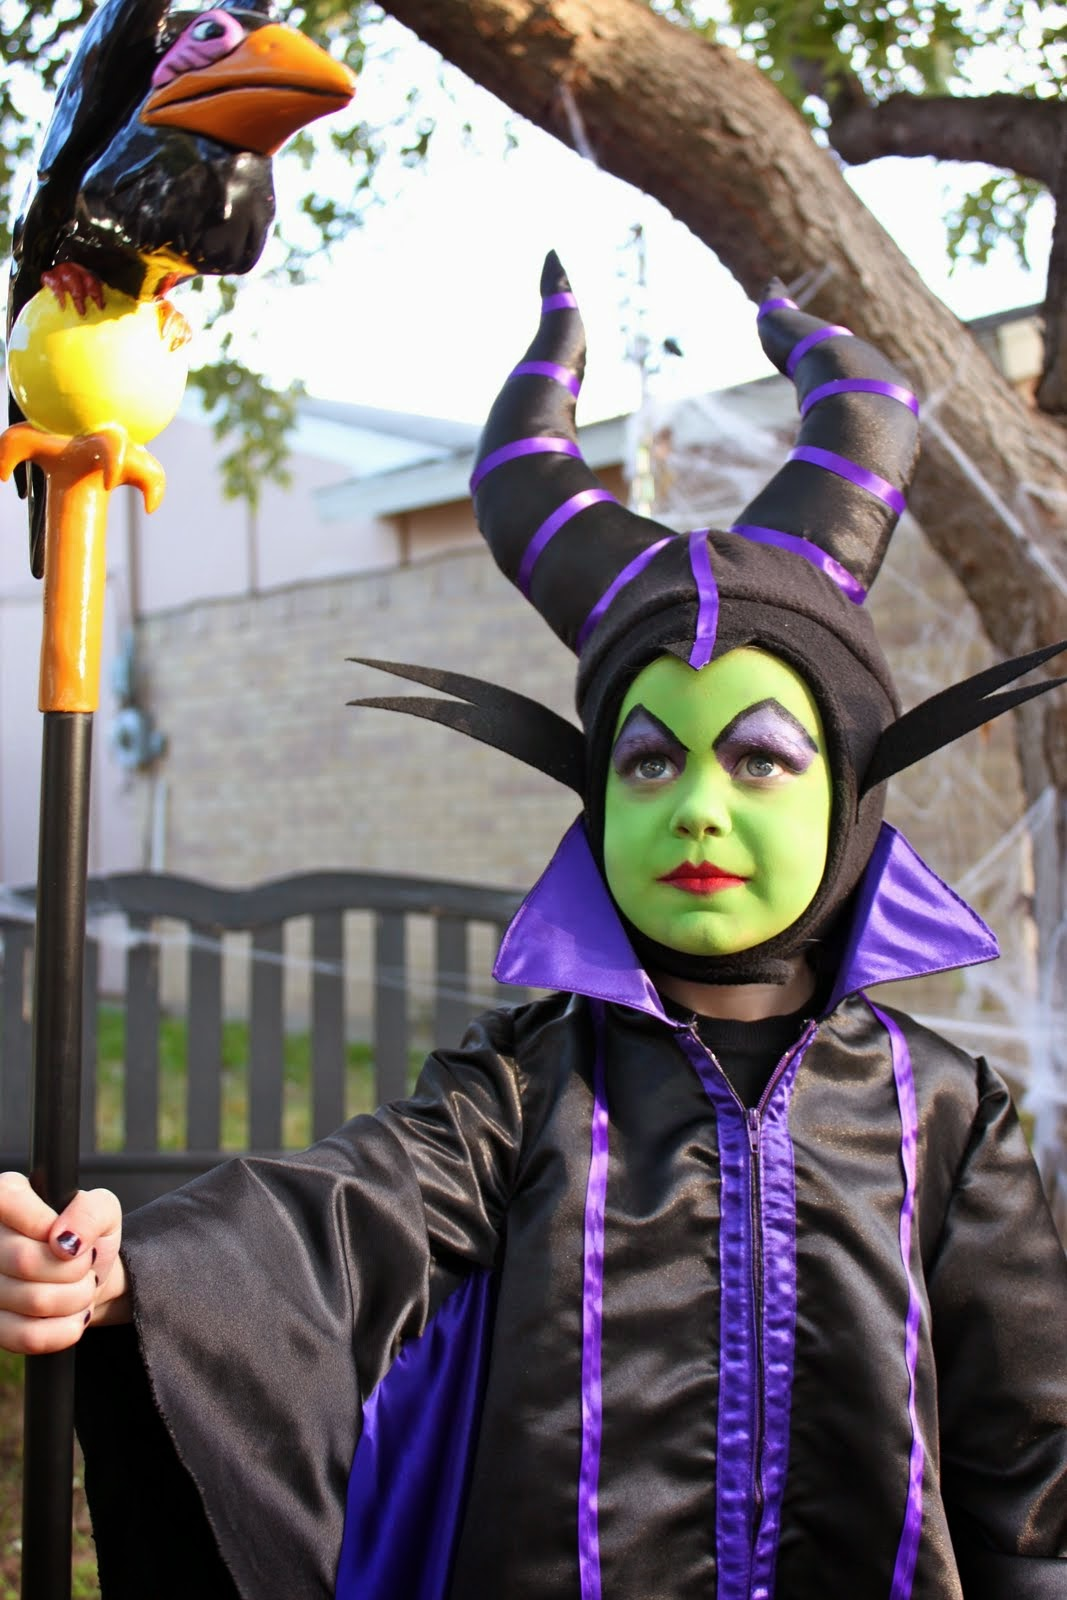 Halloween Costumes 2018: The Best of Maleficent Costumes